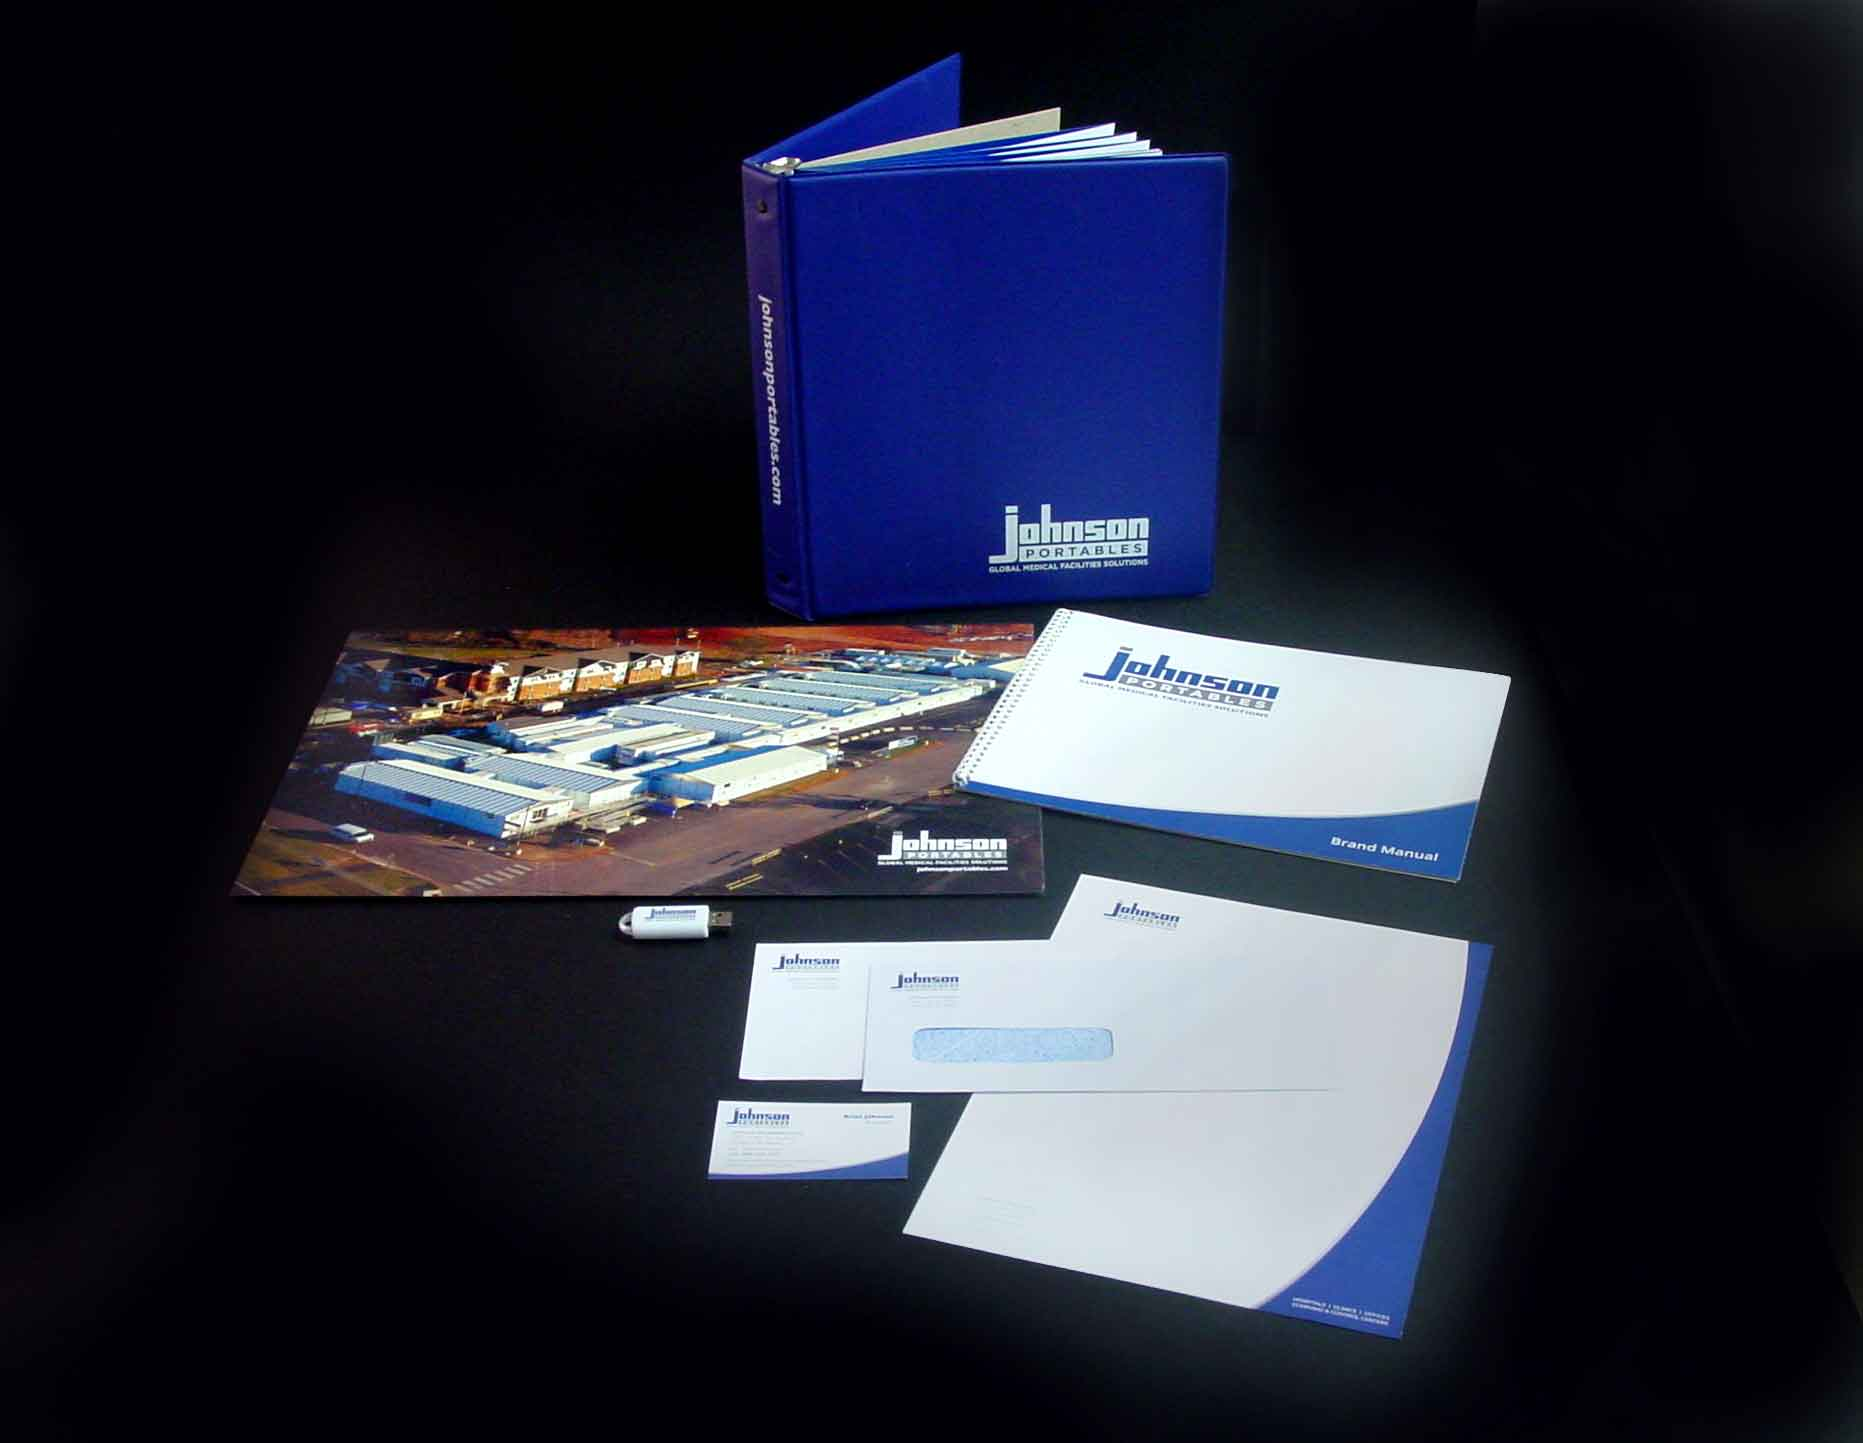 Johnson Portables Products